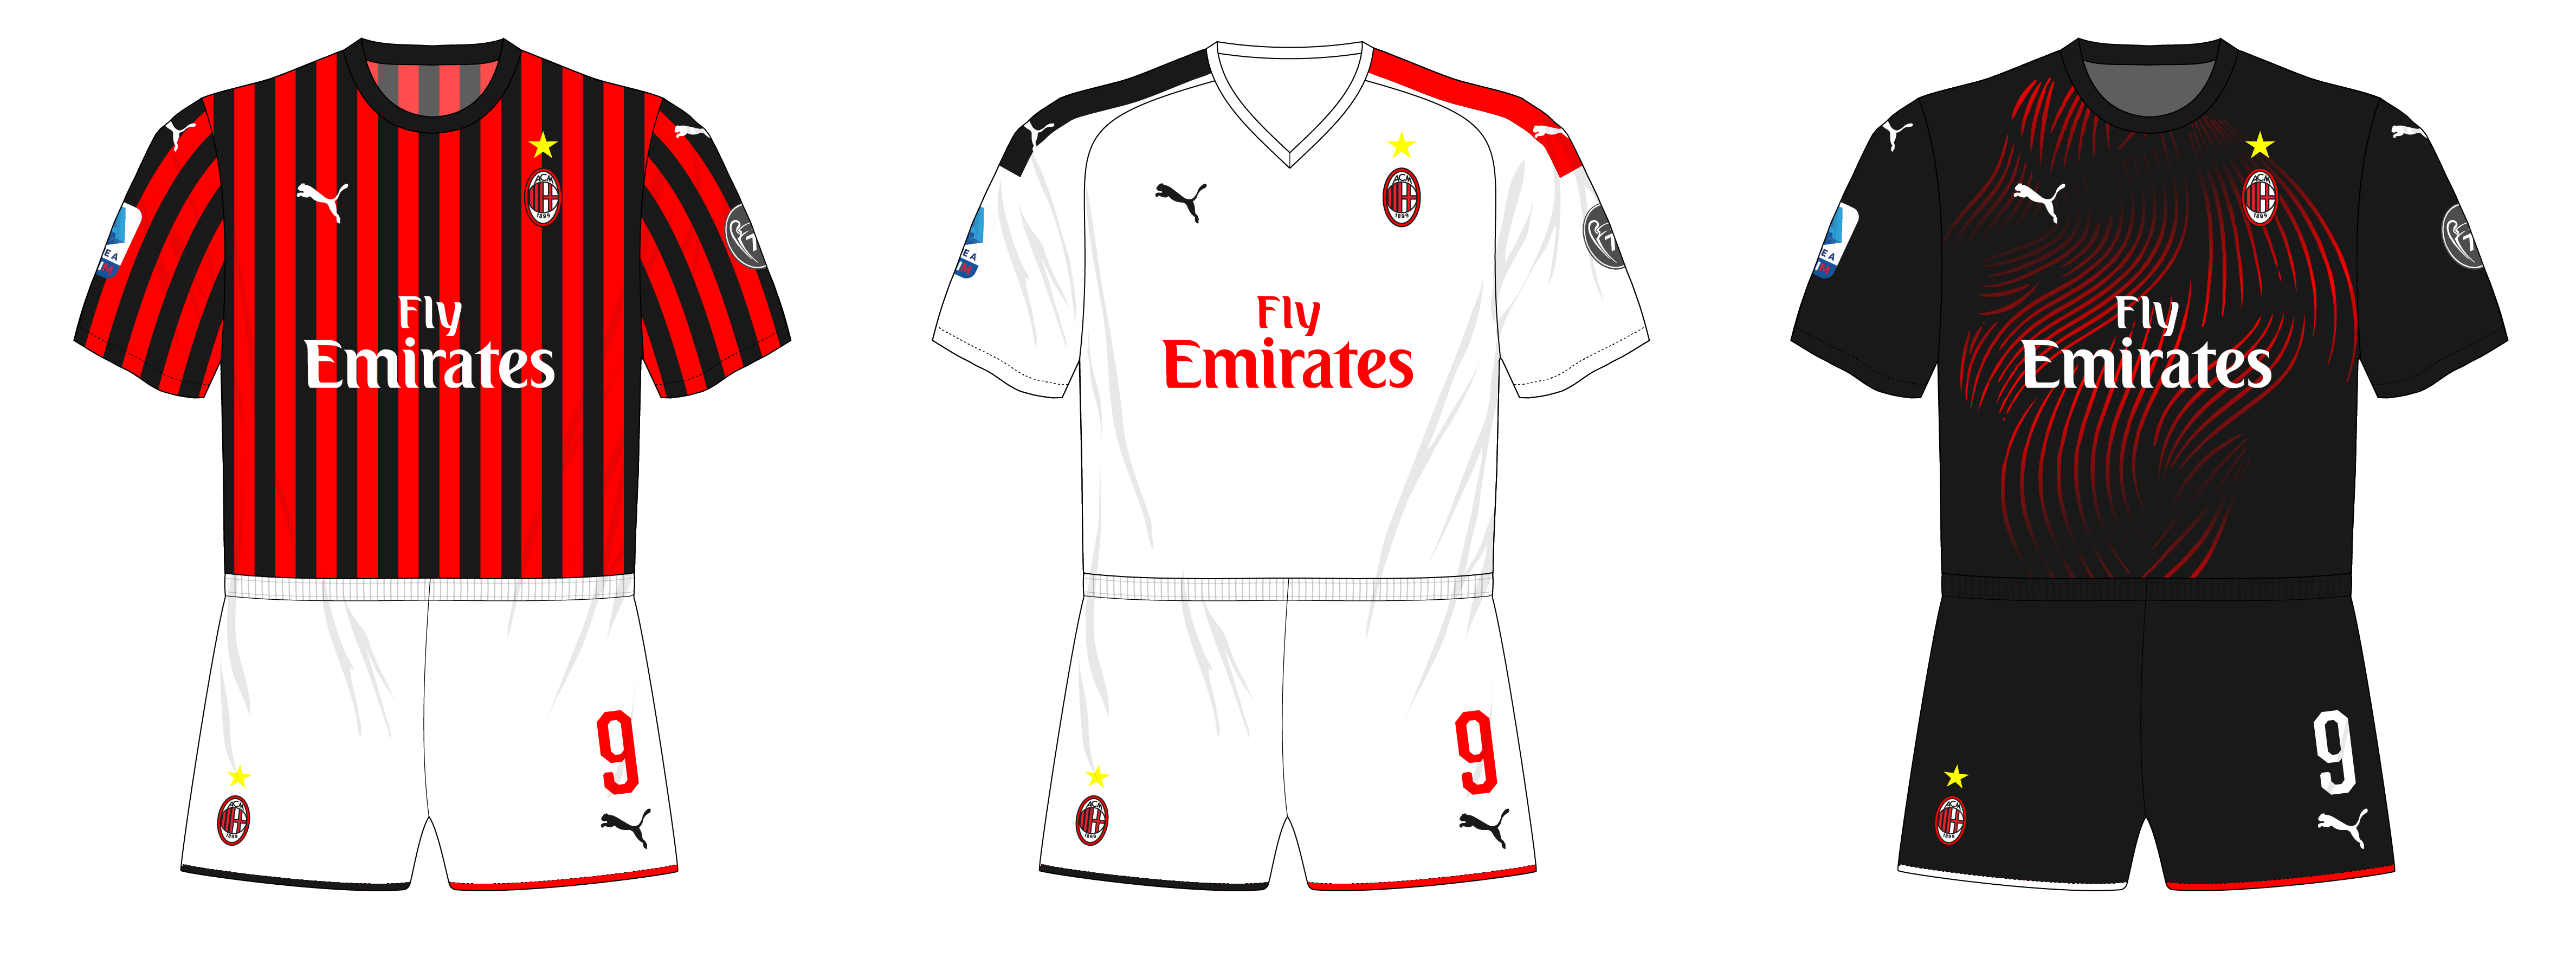 timeless design eb859 8c044 AC Milan fall just short of perfection – Museum of Jerseys